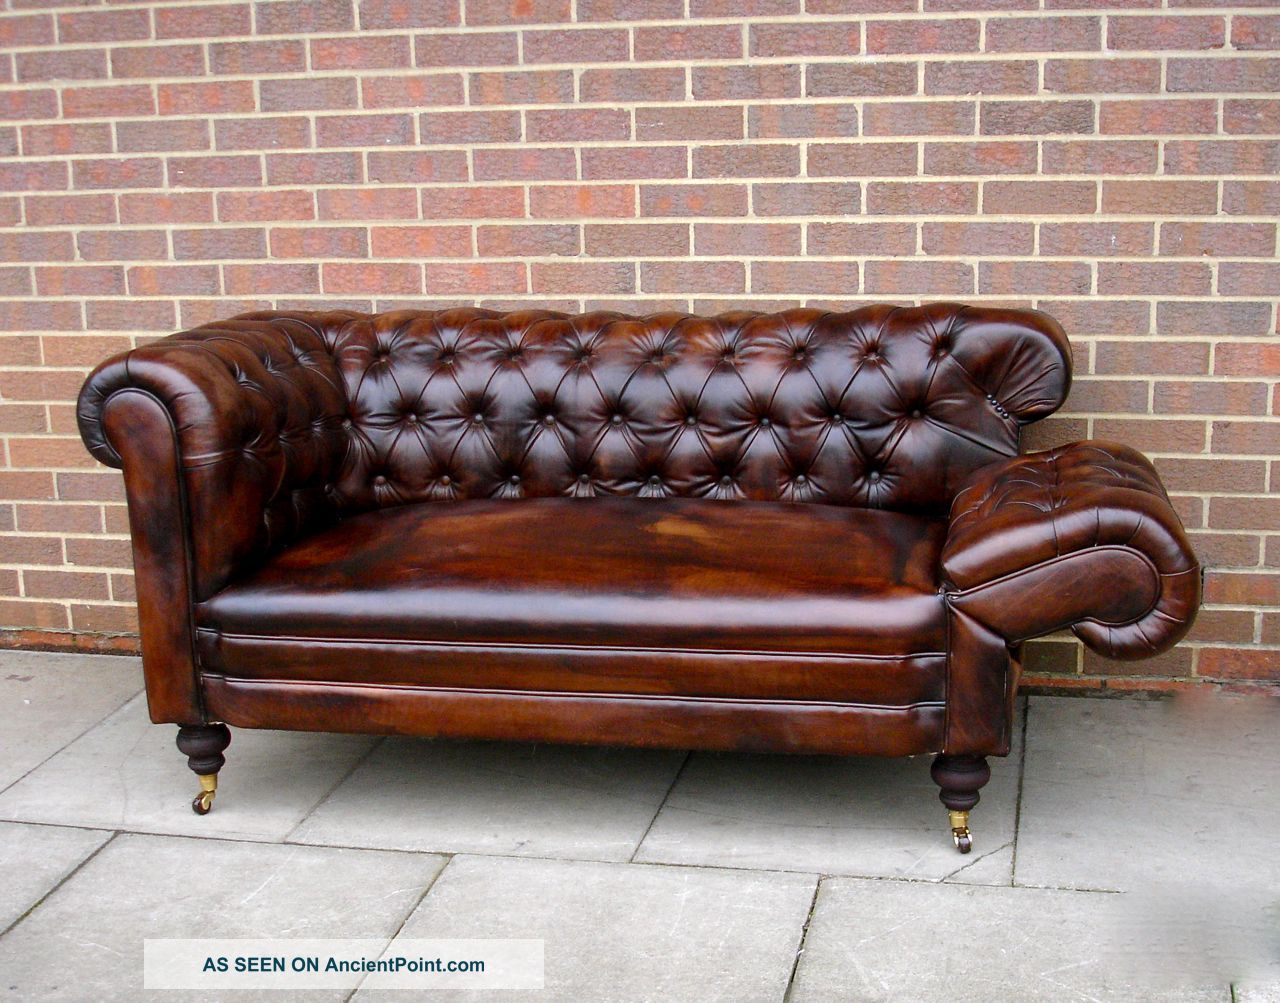 Antique 19thc Leather Chesterfield Sofa Drop Arm Hand - Full Tacked  Restoration - Antique 19thc Leather Chesterfield Sofa Drop Arm Hand - Full